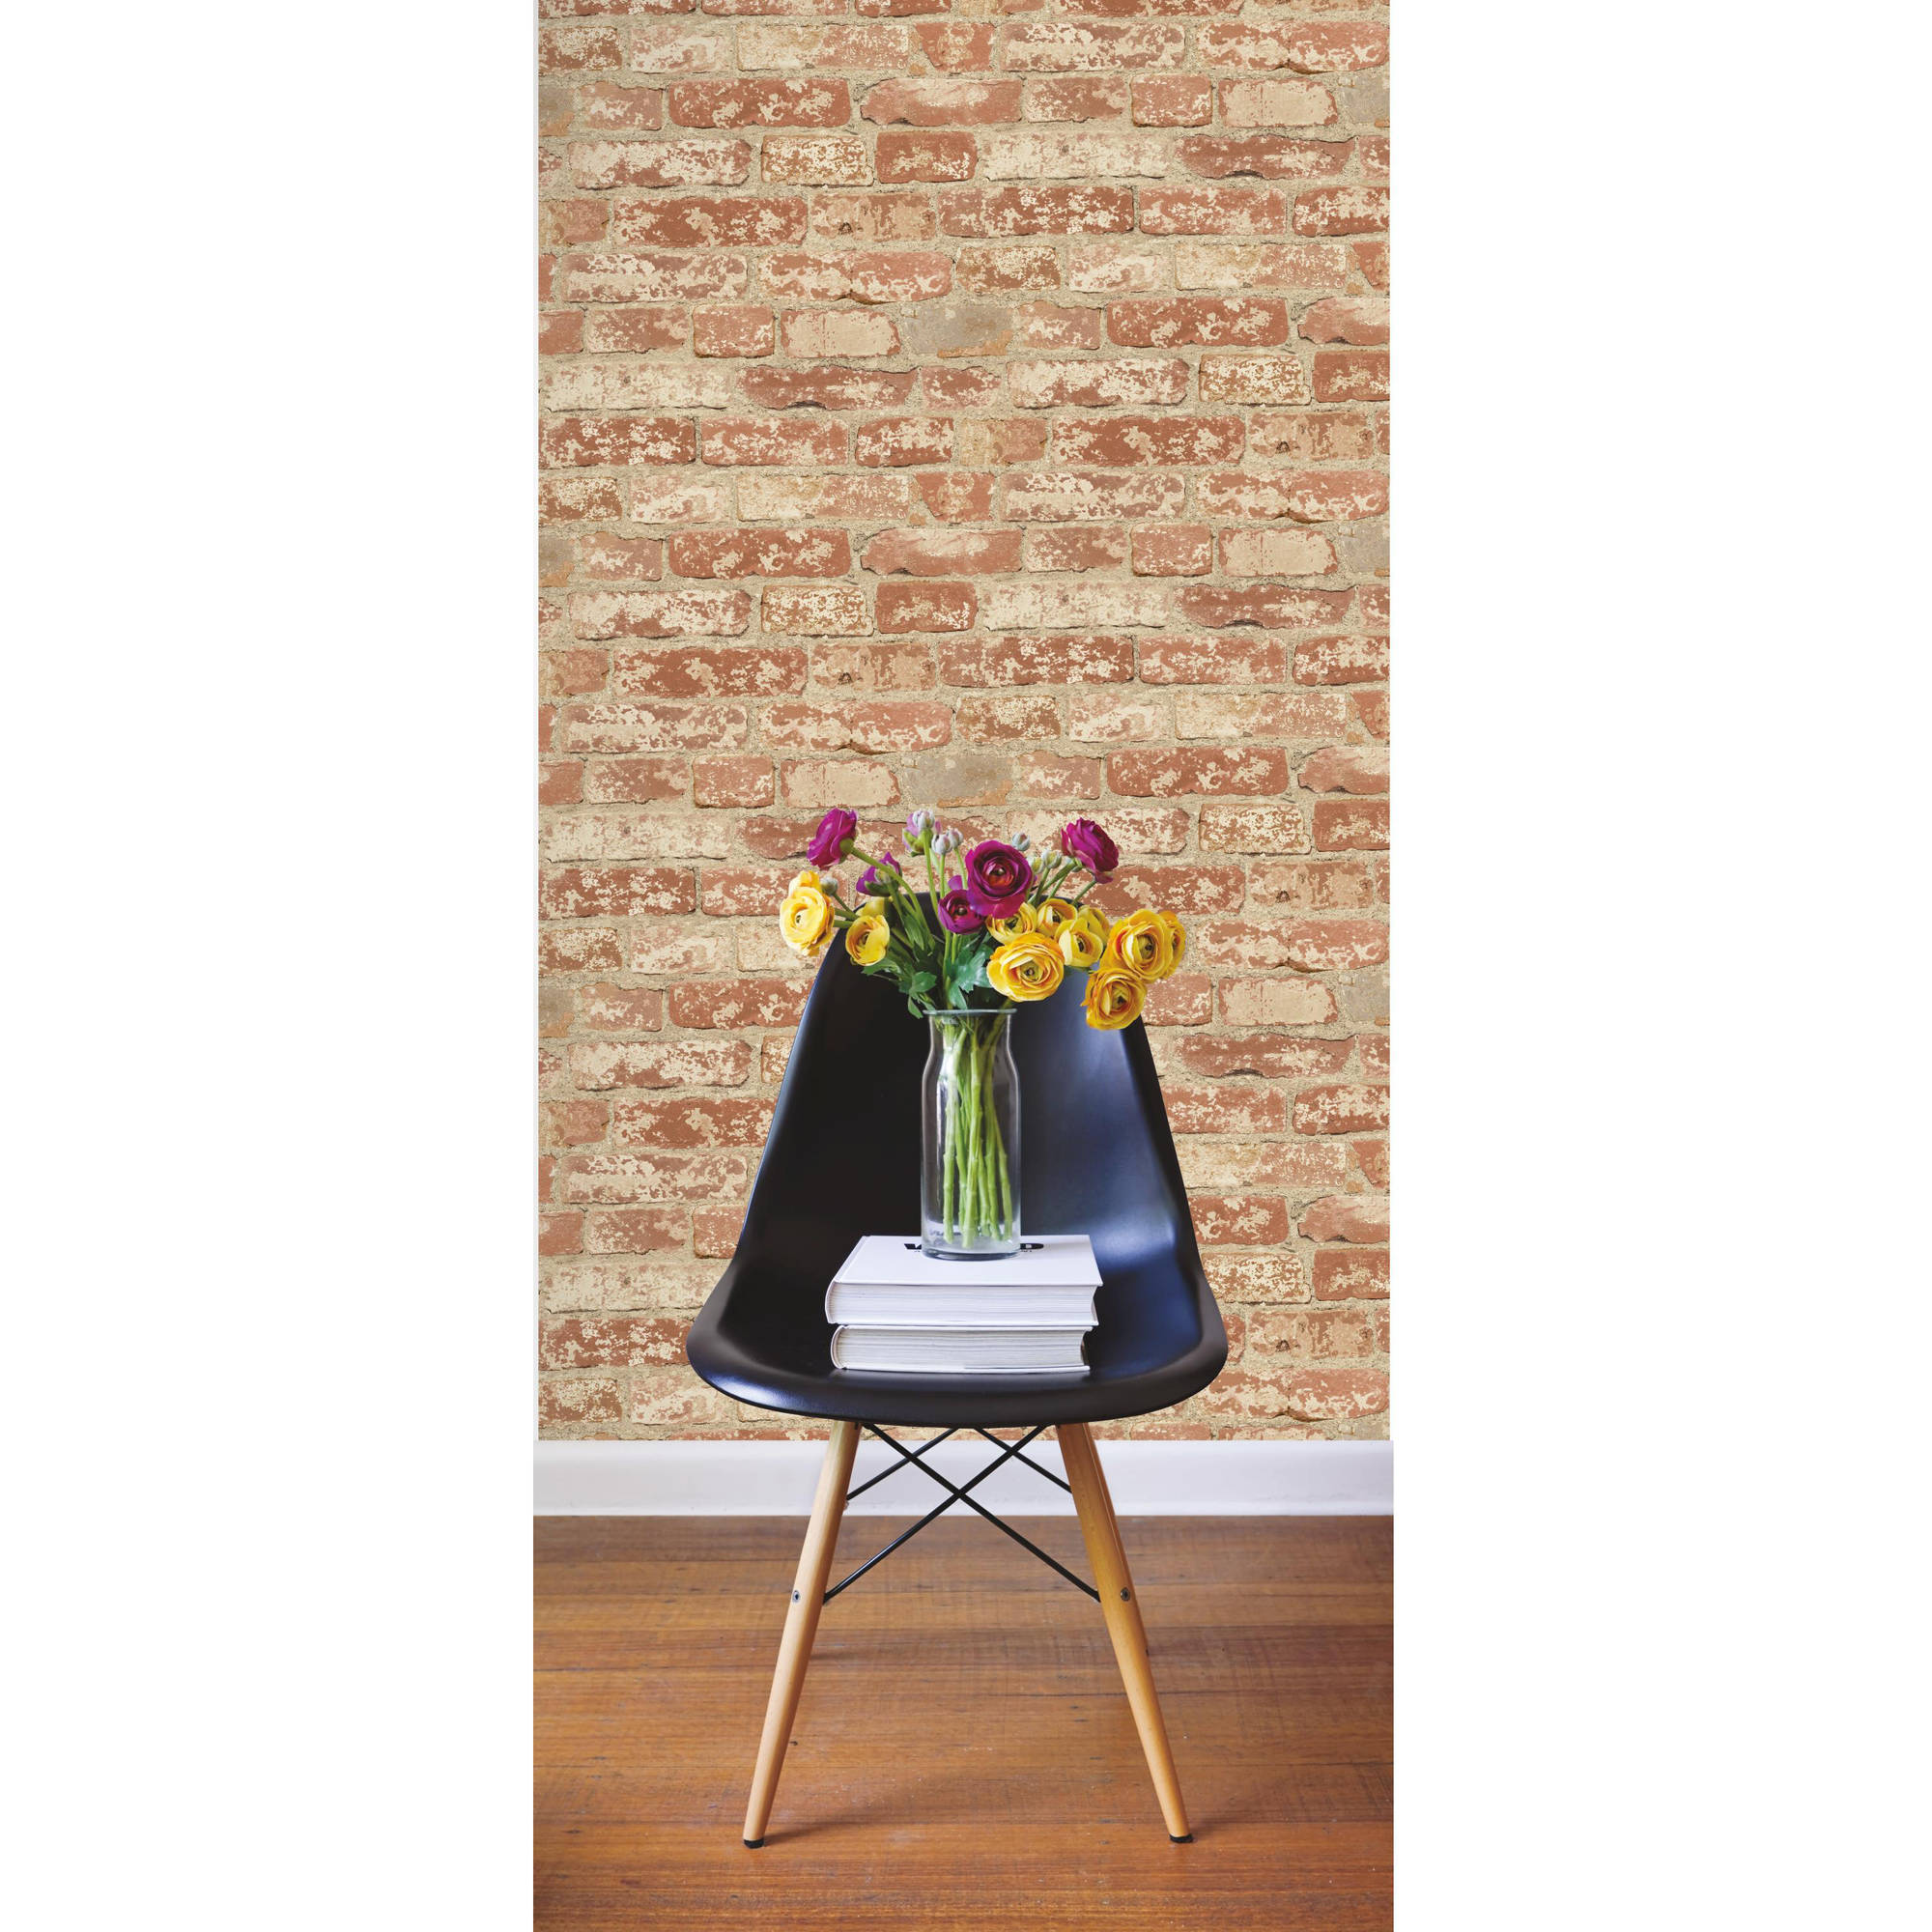 RoomMates Stuccoed Red Brick Peel and Stick Wall Décor Wallpaper